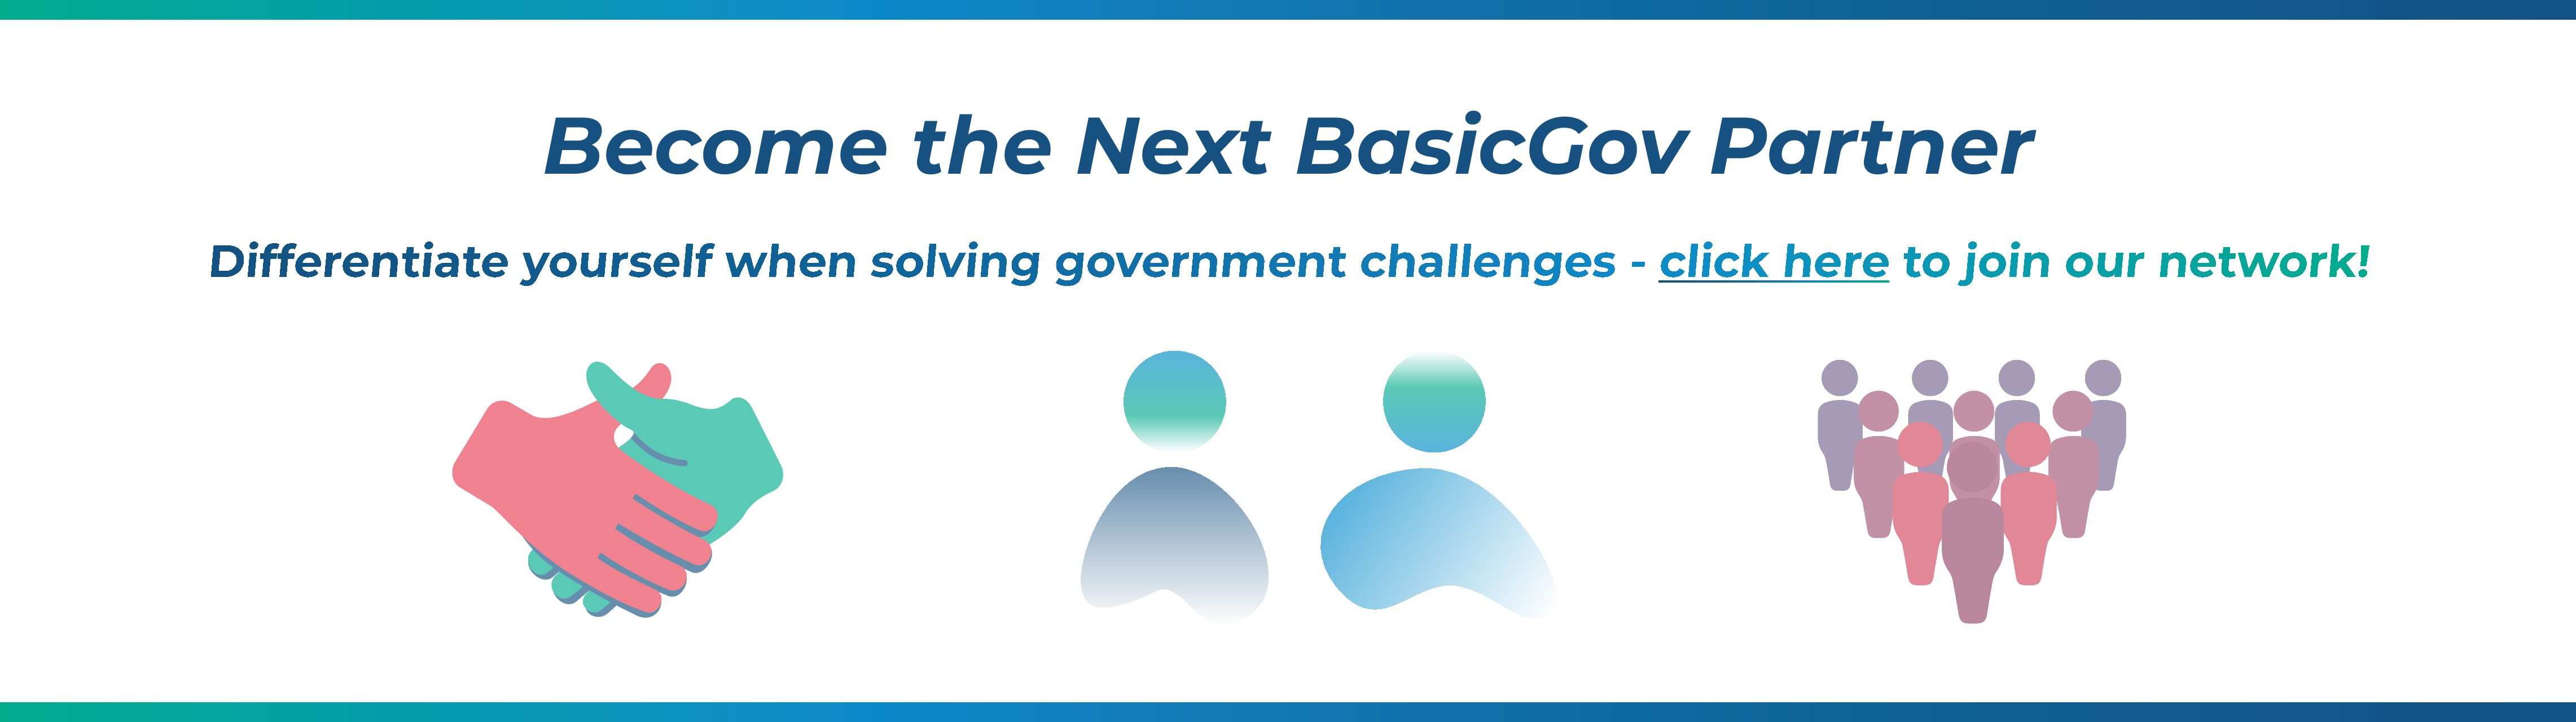 Become the Next BasicGov Partner